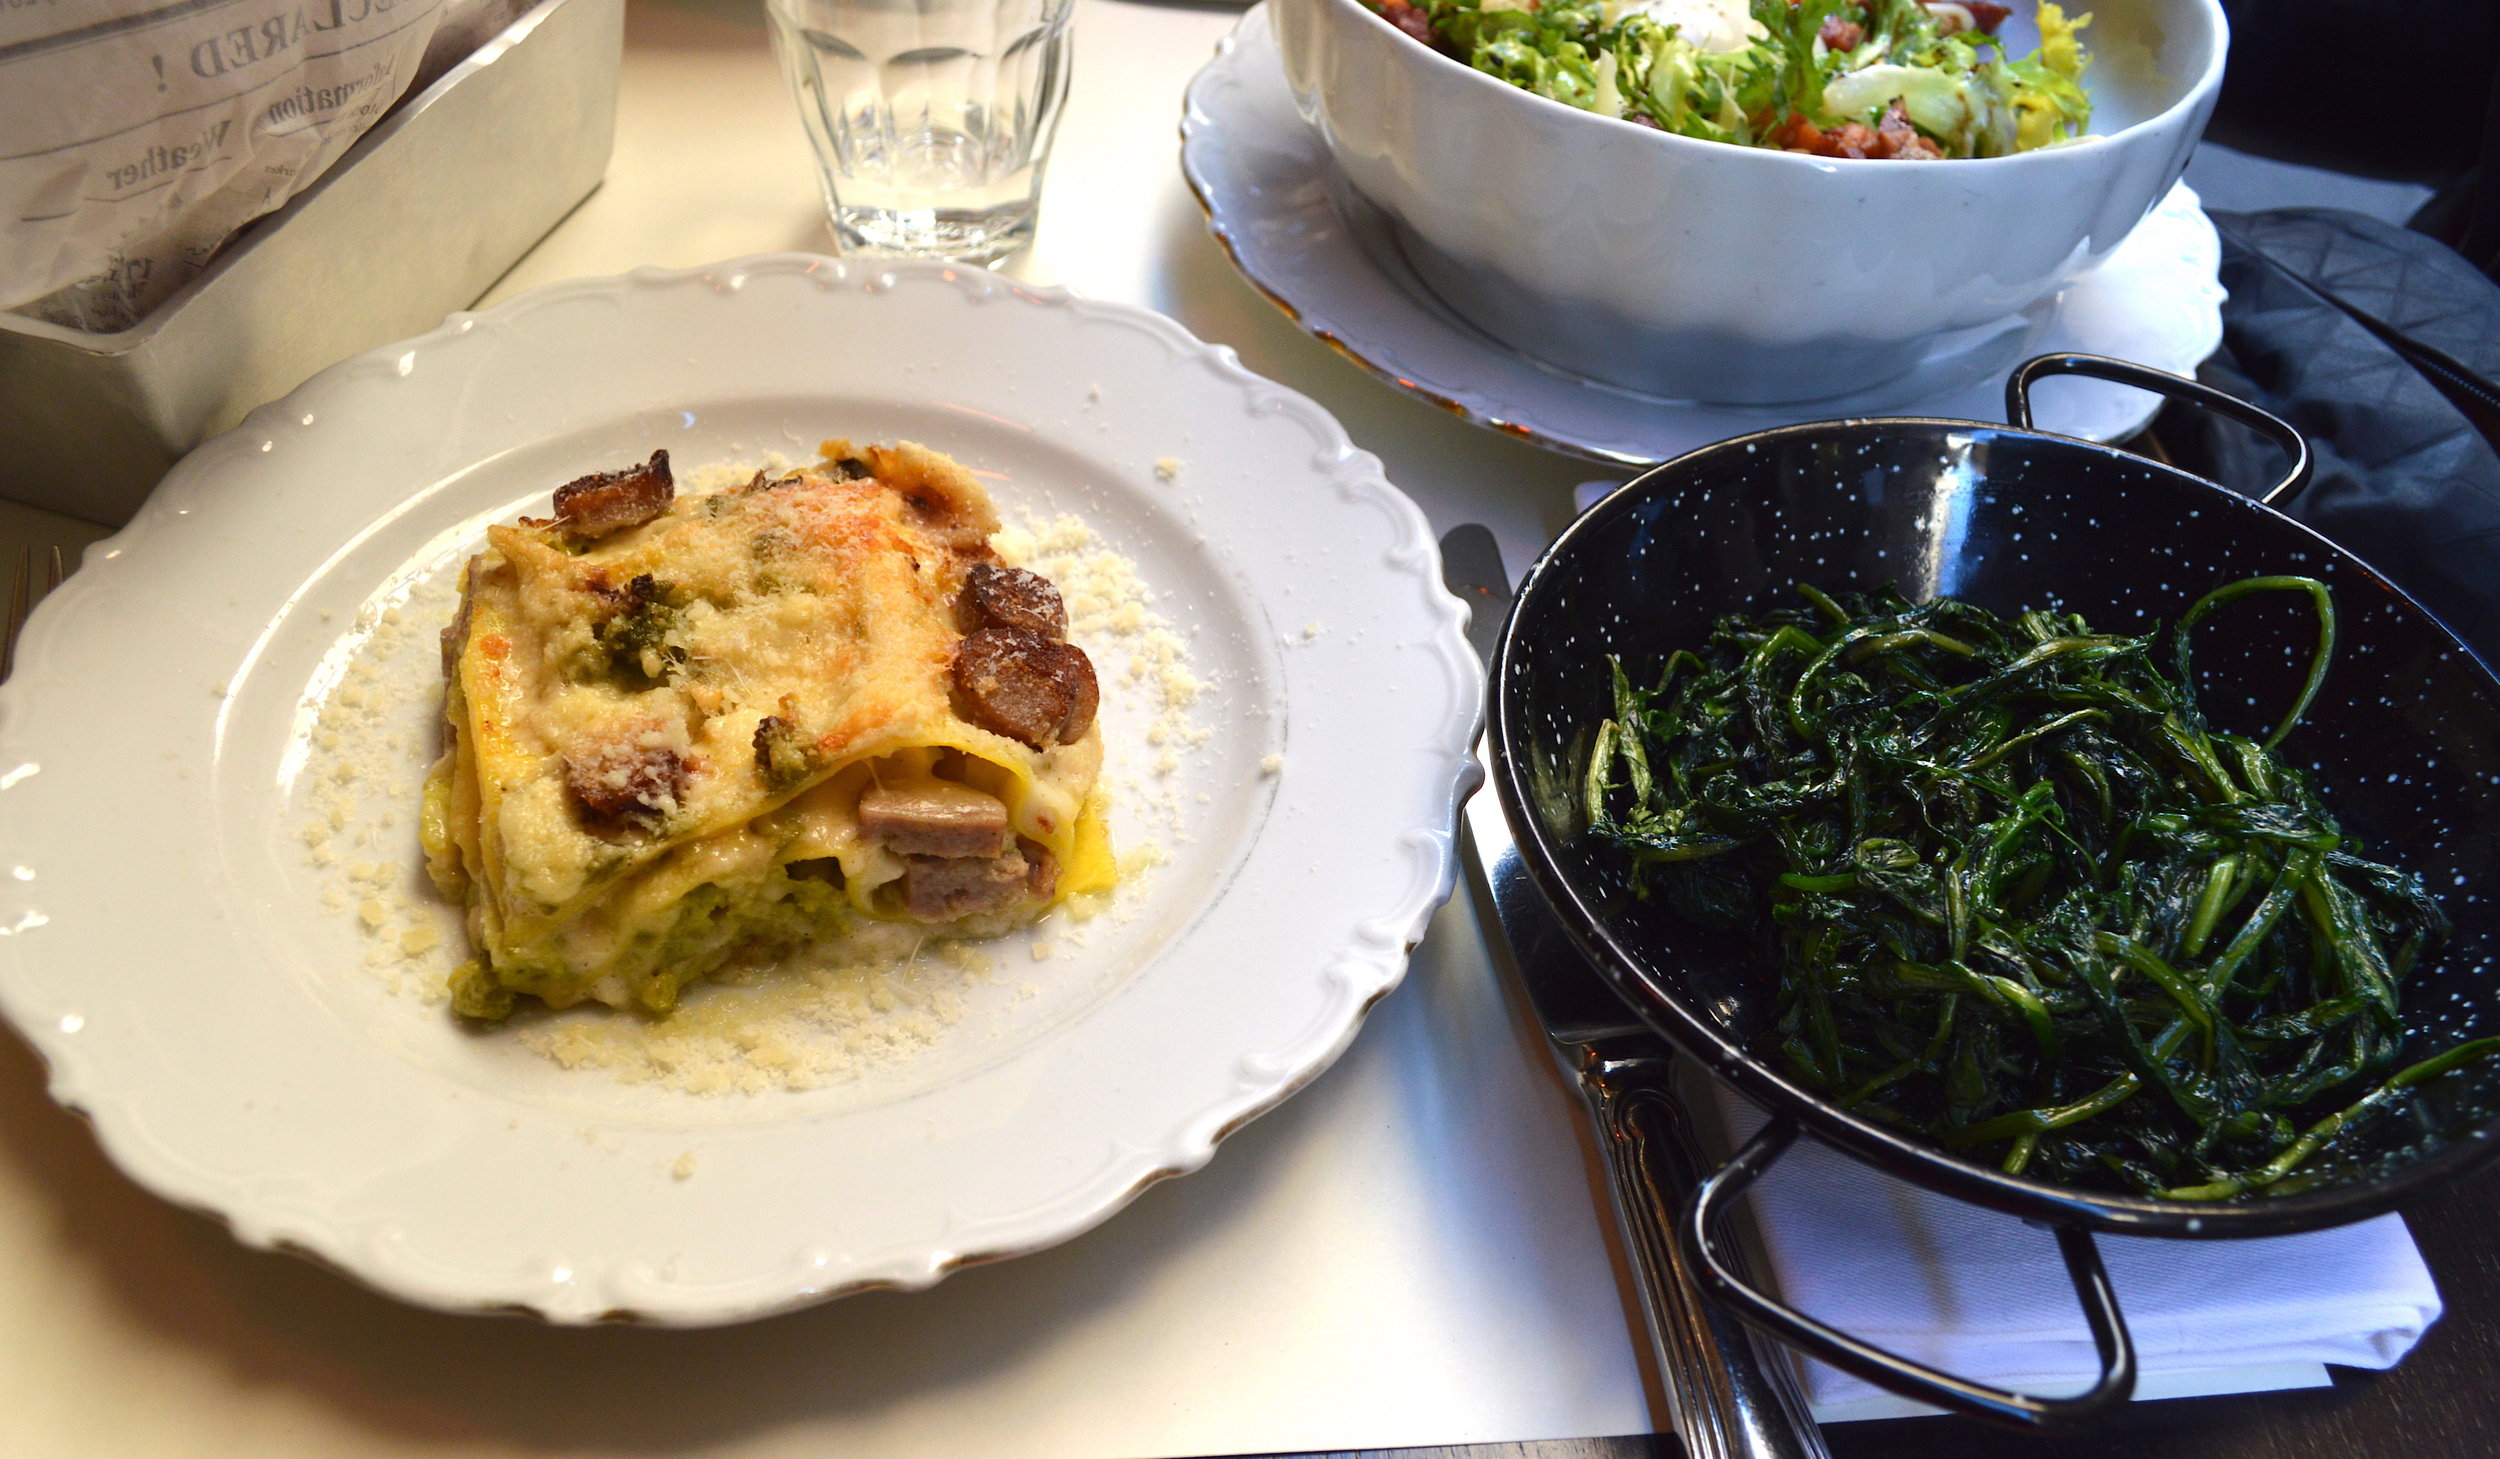 La Buvette  La Buvette is located just two minutes from The Spanish steps so you can do some tourist sightseeing before heading there for lunch or dinner.  It has a laid-back French bistro style with leather banquet seating and you can sit outside when the weather is good.  I loved the fact that they offered a lasagna of the day which was broccoli, sausage and mozzarella.  Great for lunchtime salads.  Via Vittoria, 44, 00187 Roma, Italy  +39 06 679 0383